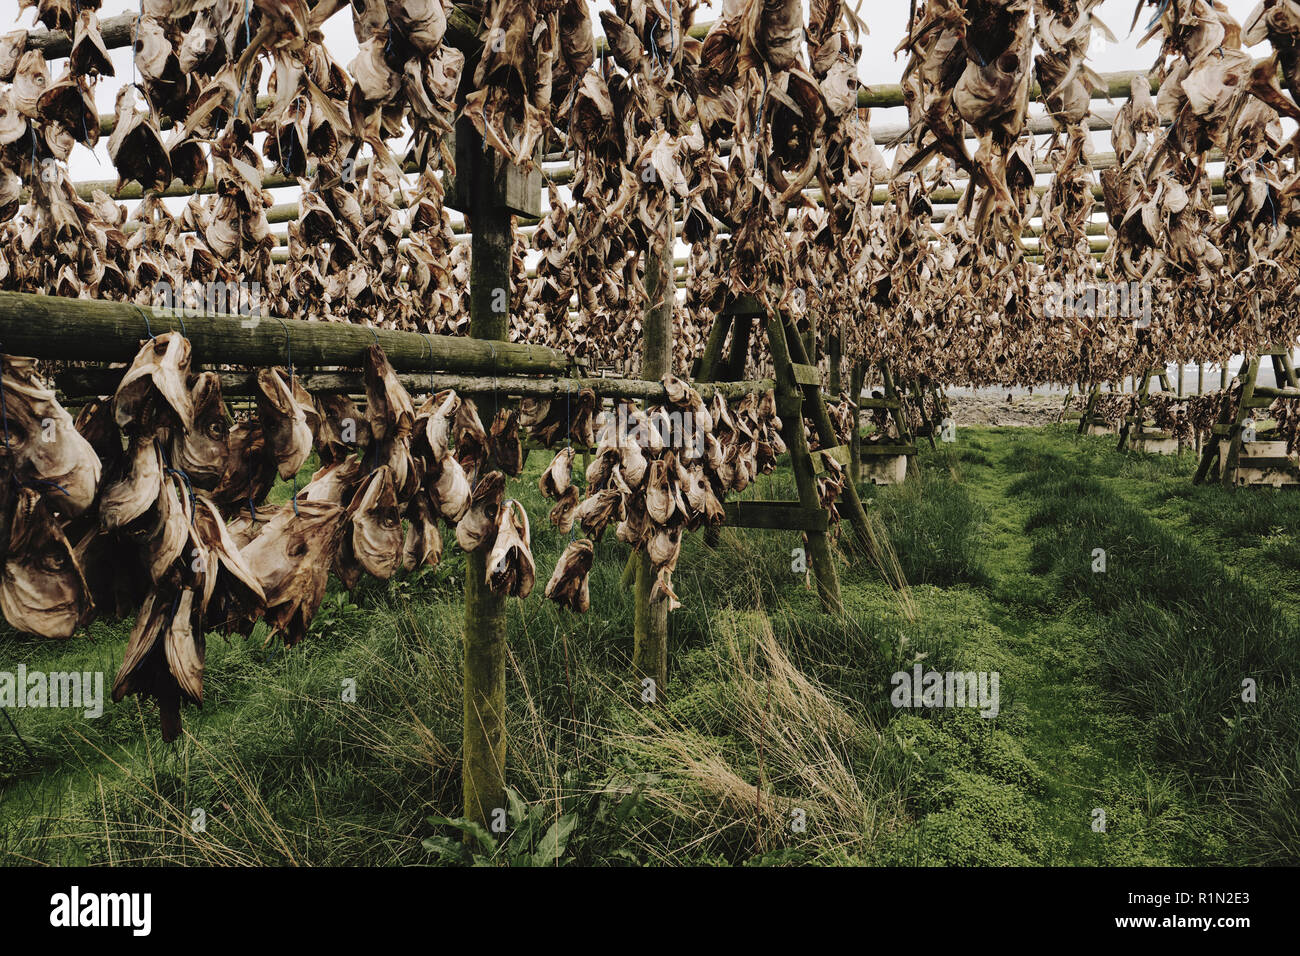 Drying fish heads - cut off fish heads hung out to dry on large timbered frames in the Iceland landscape Stock Photo